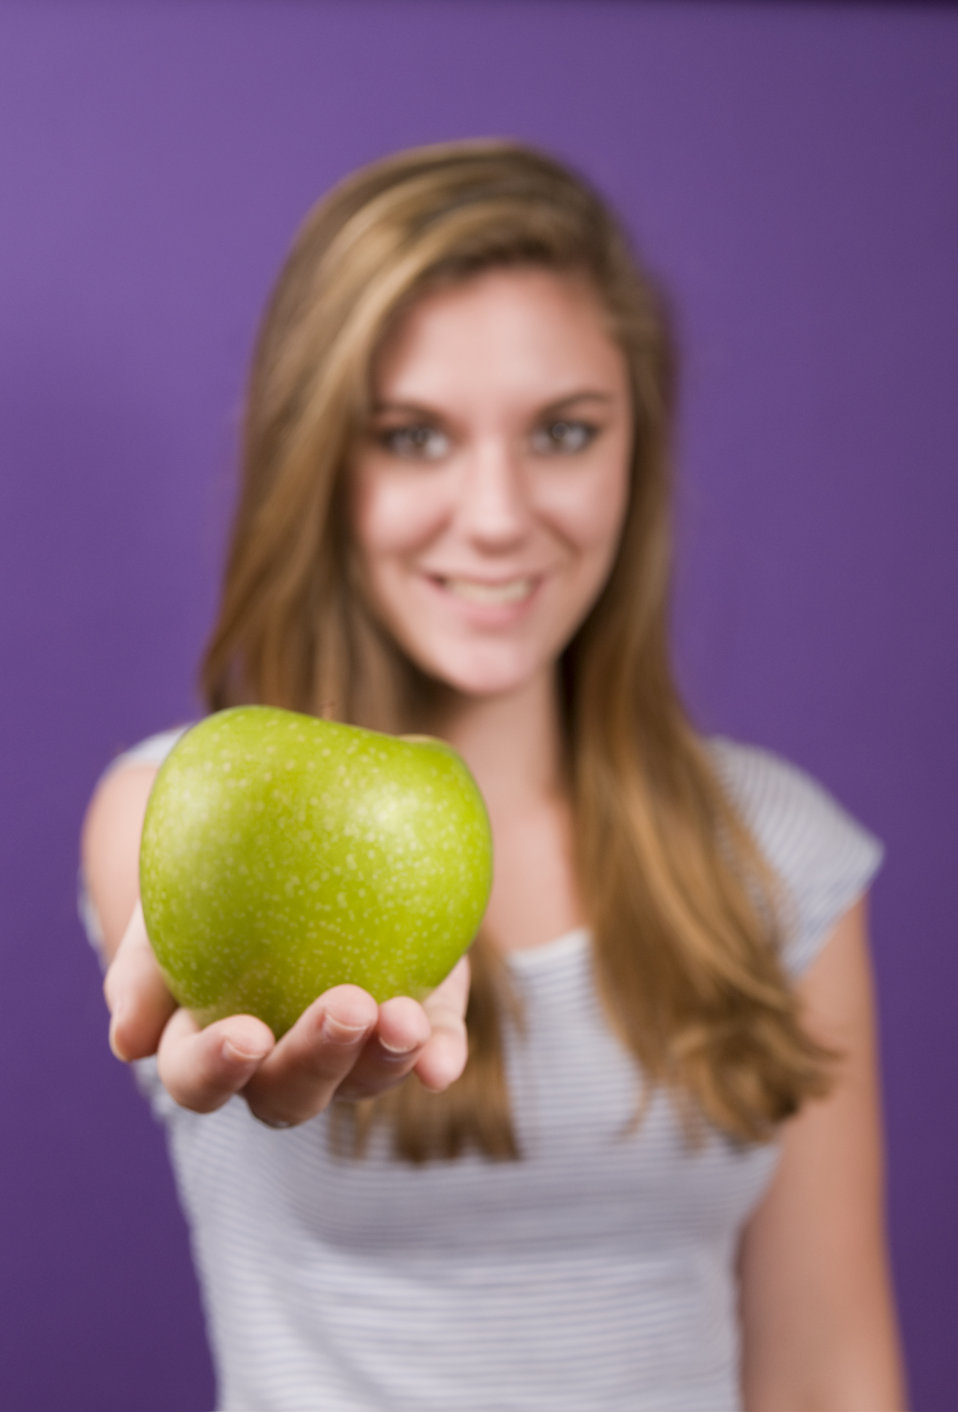 A young woman holding a green apple : Free Stock Photo